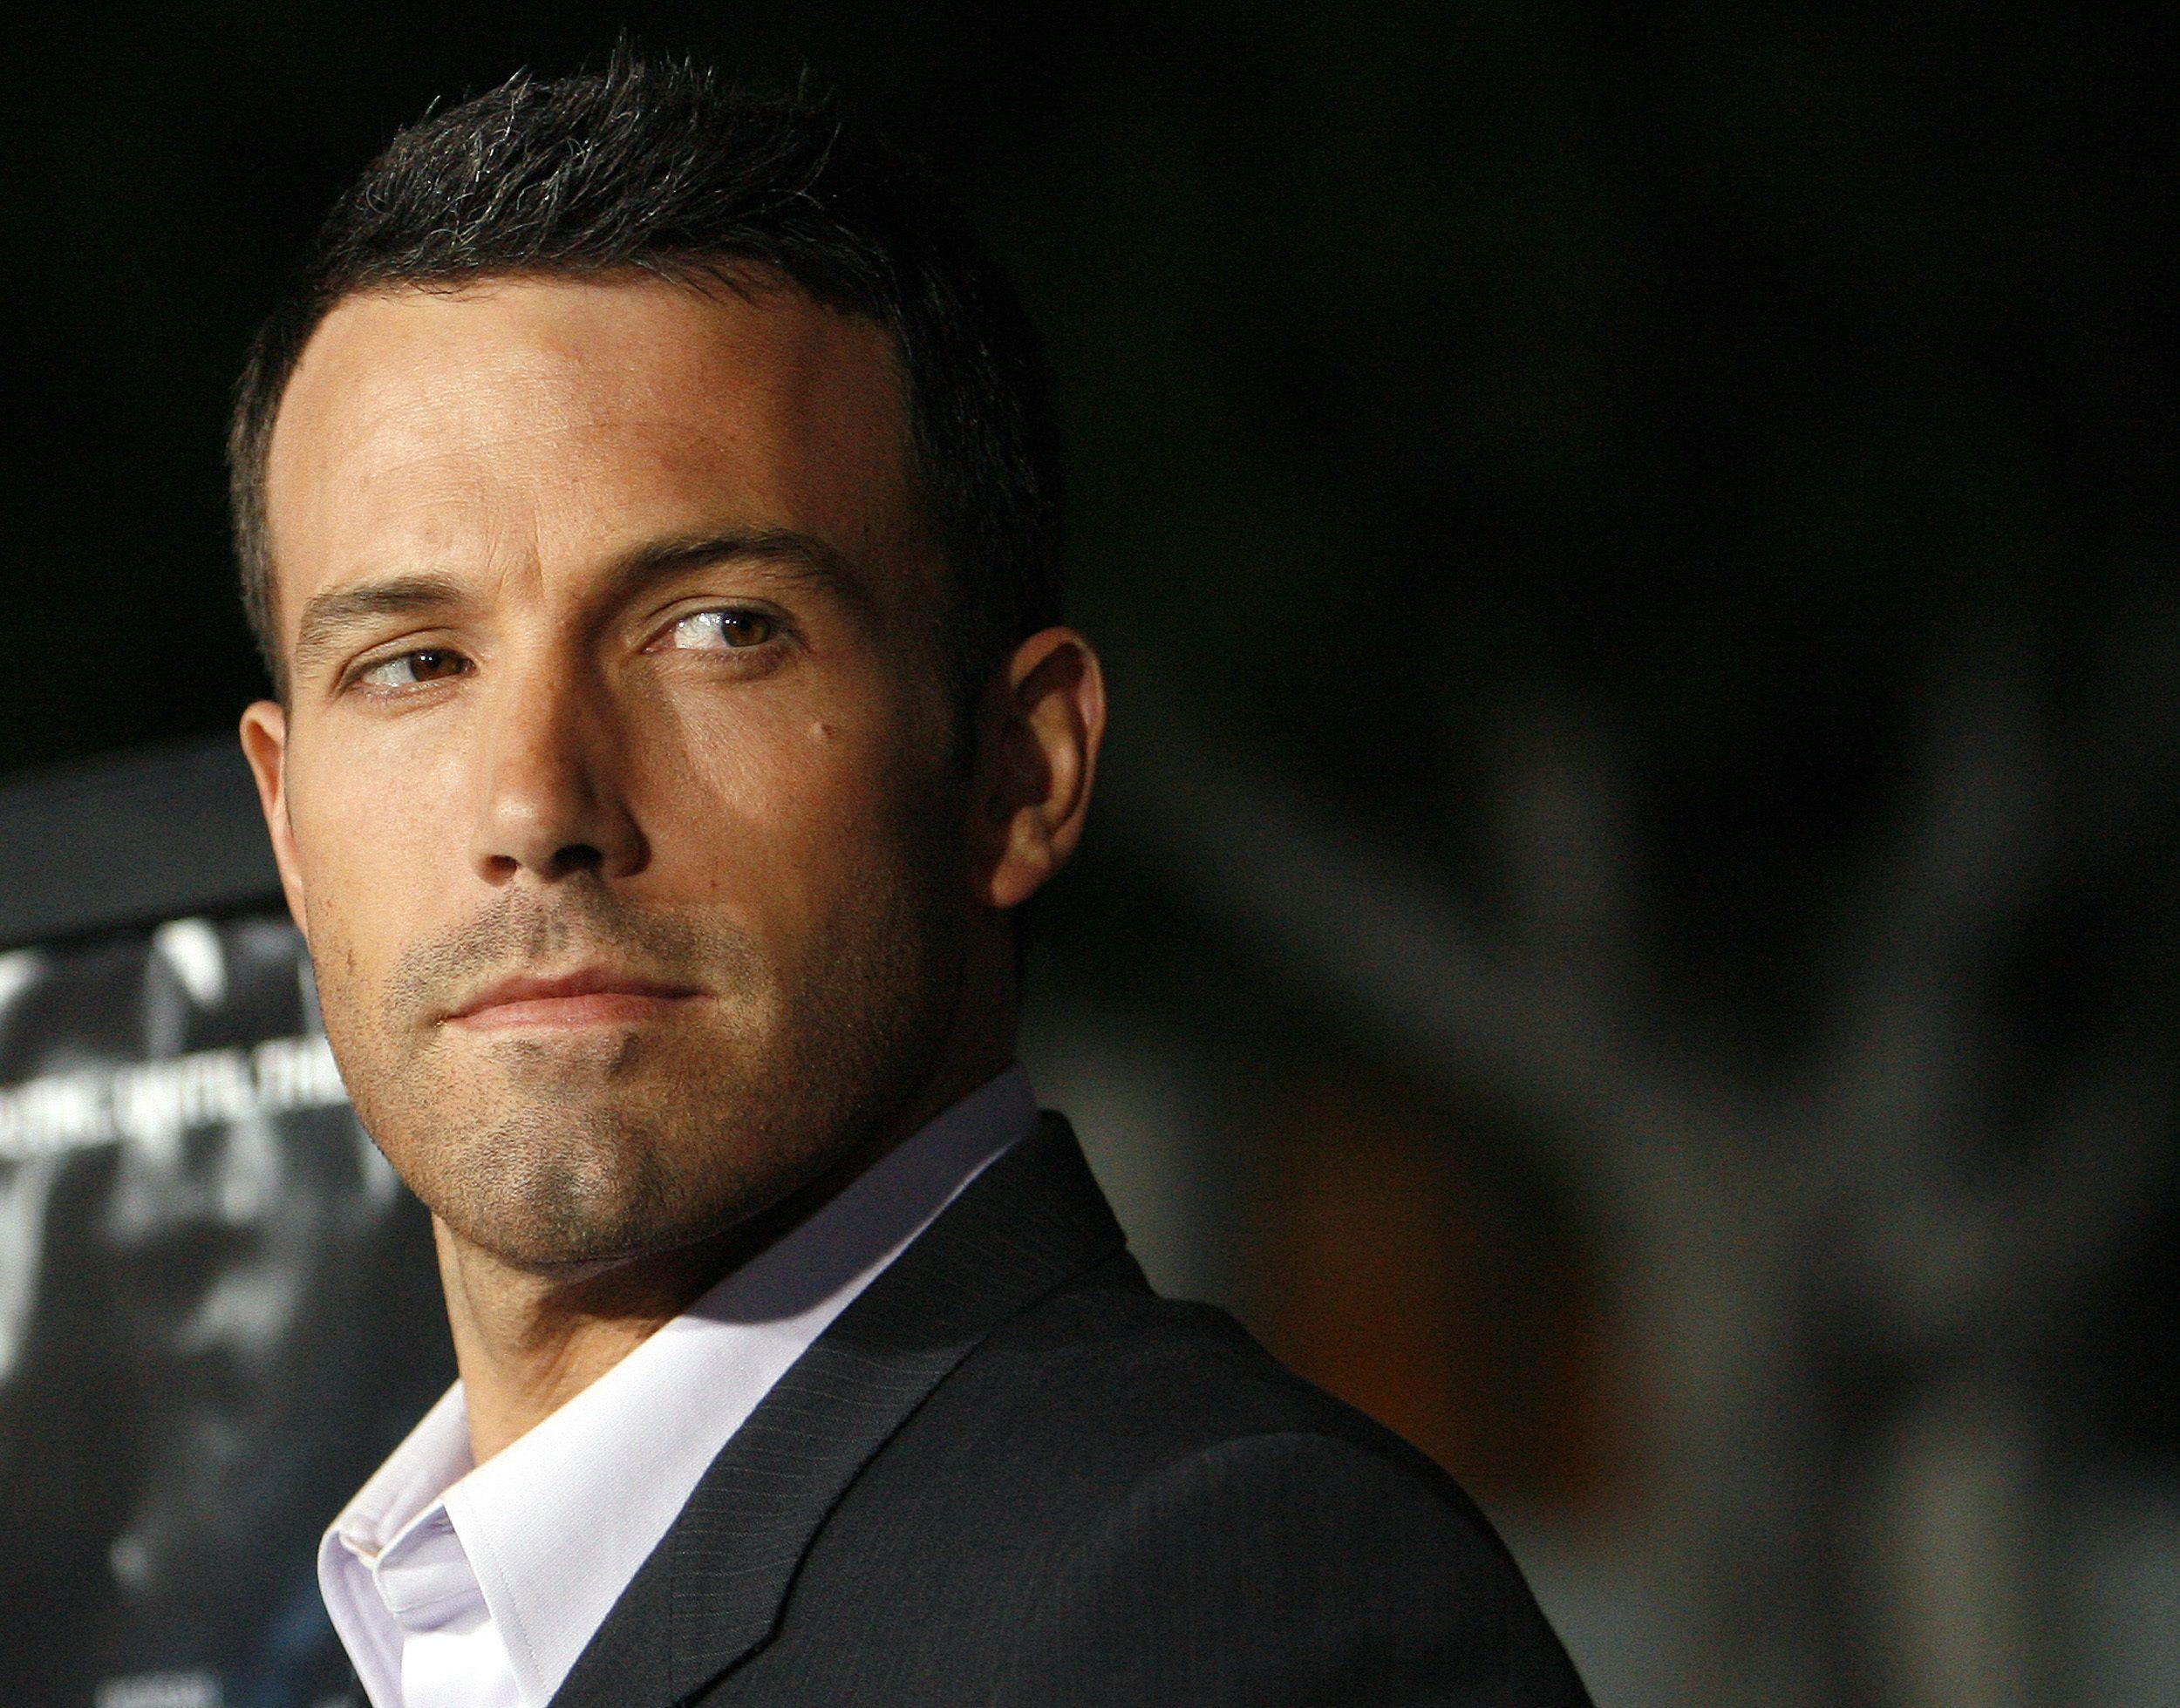 Ben Affleck Wallpapers Hd